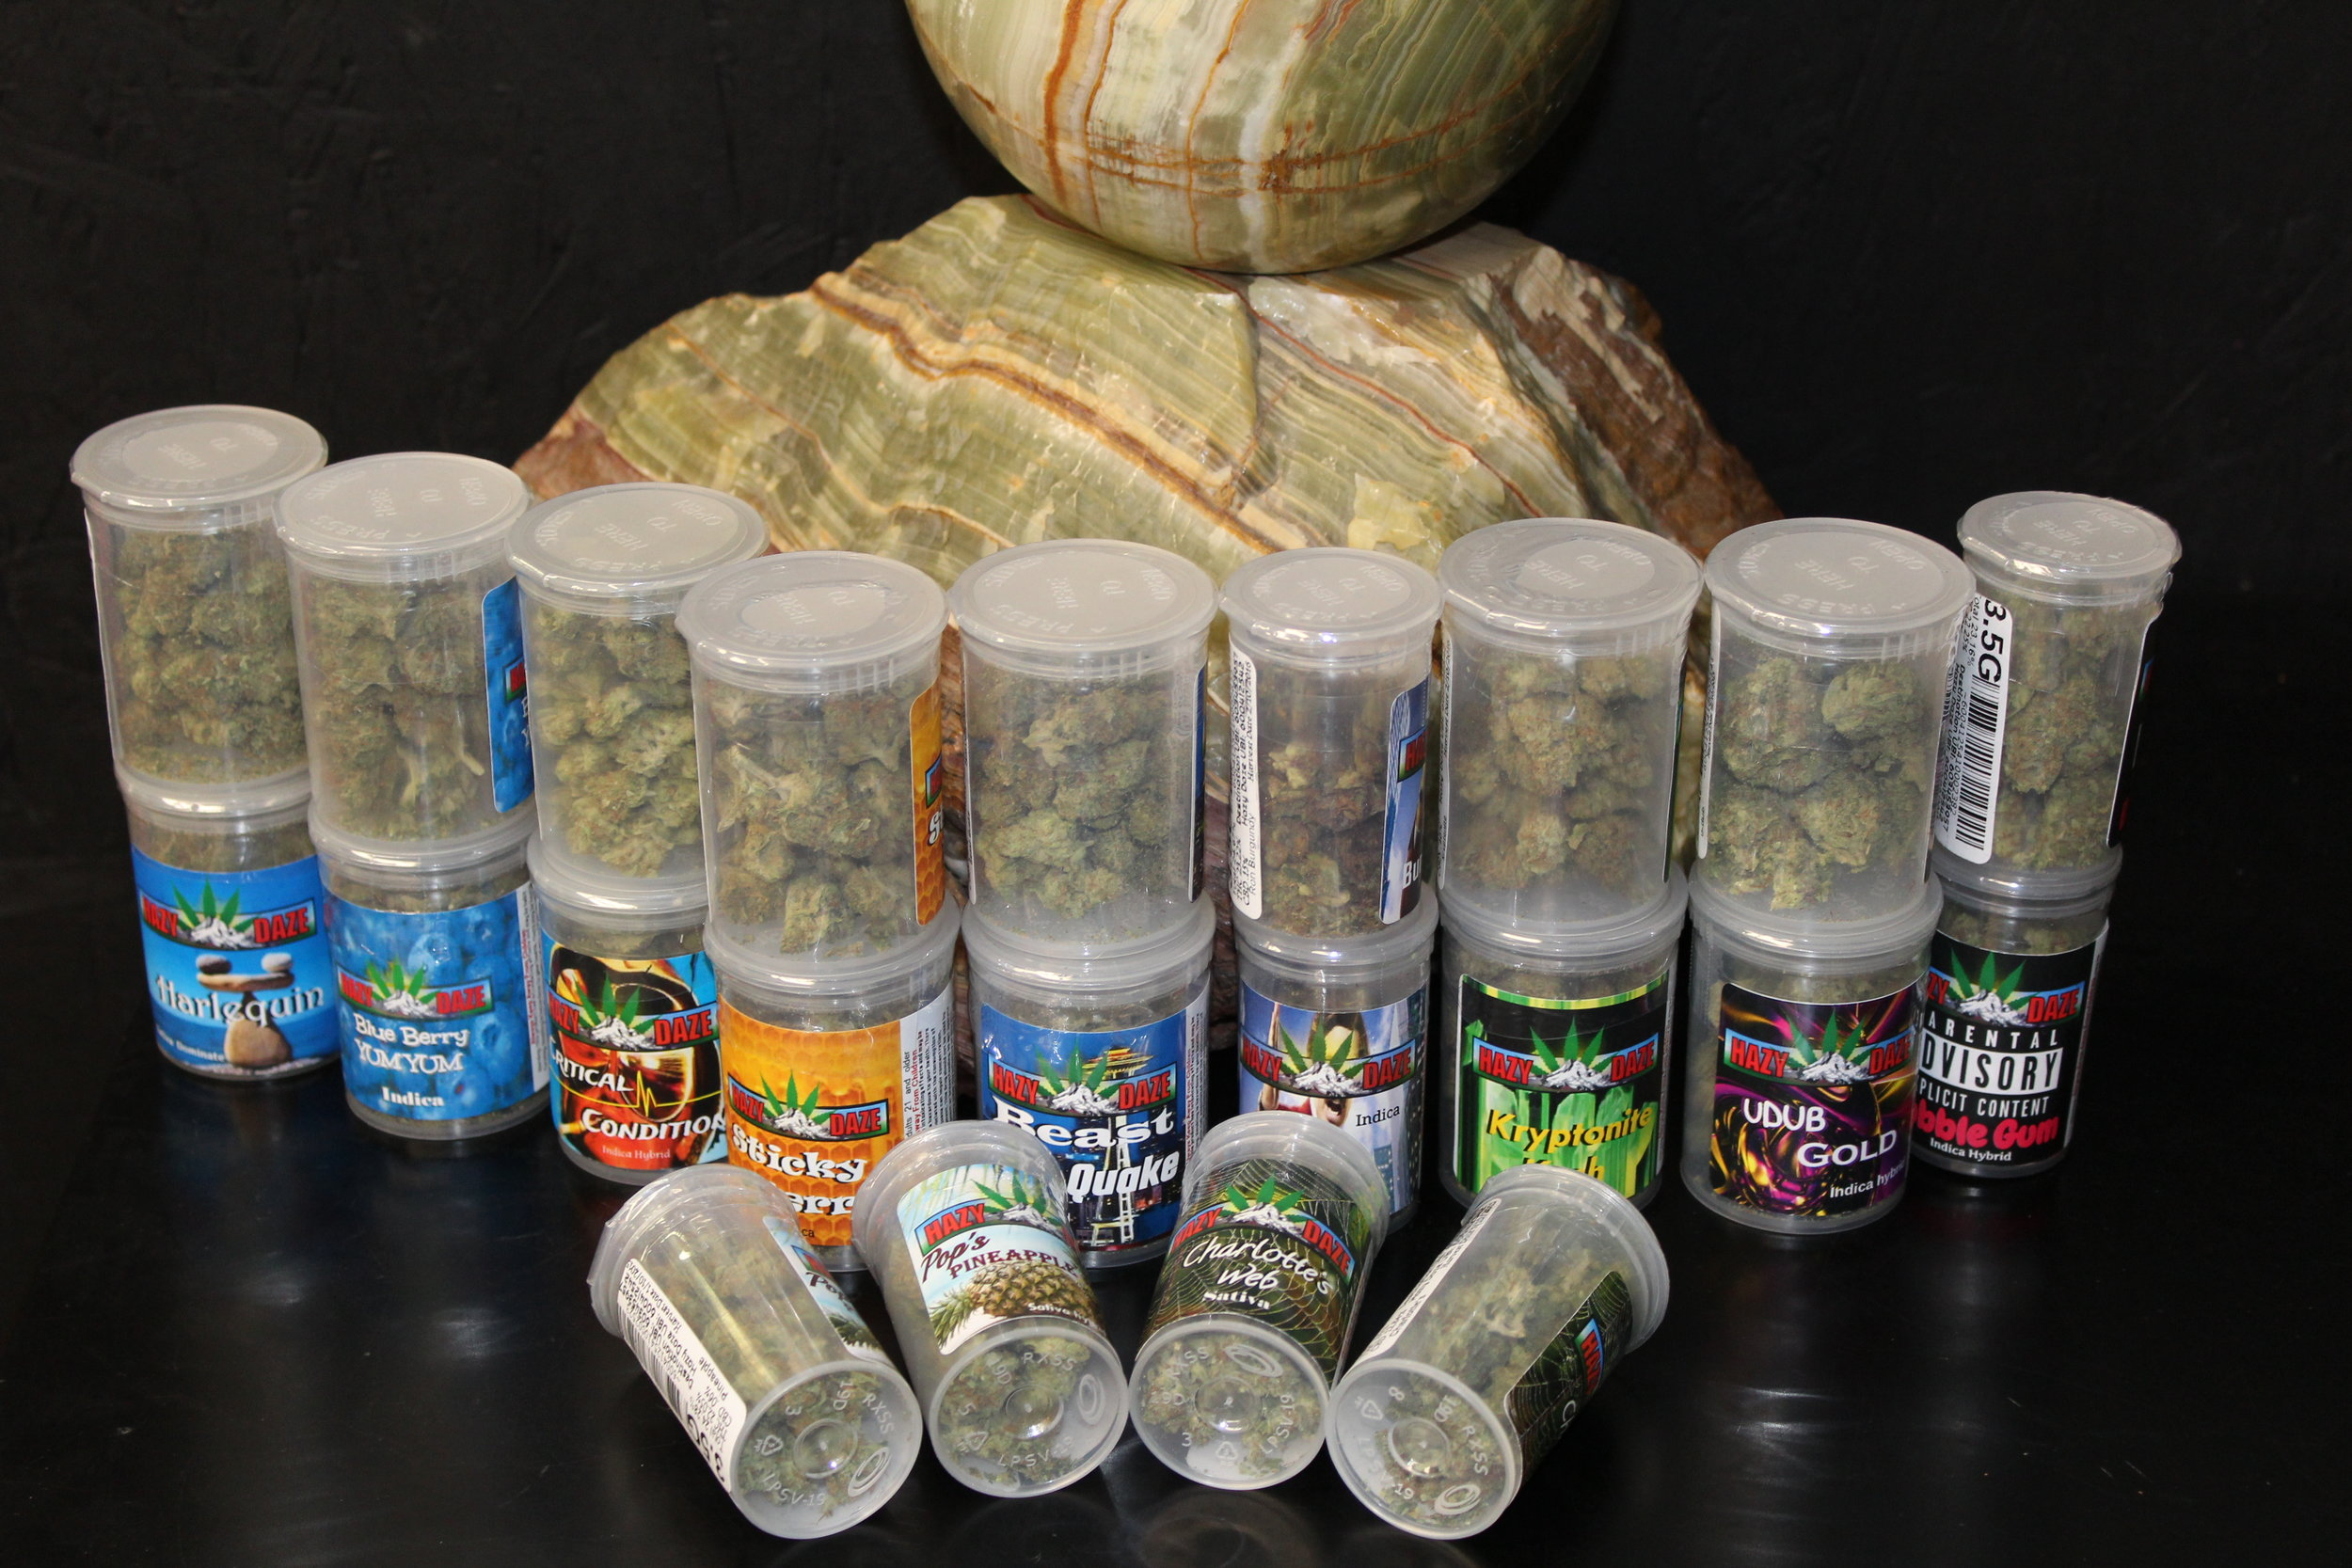 These are the old Hazy Daze marijuana flower packages. Haze Daze has recently began using premium etched glass jars. Some of Hazy Daze's most popular strains are Ron Burgundy, Beast Quake, and OG's Pearl.